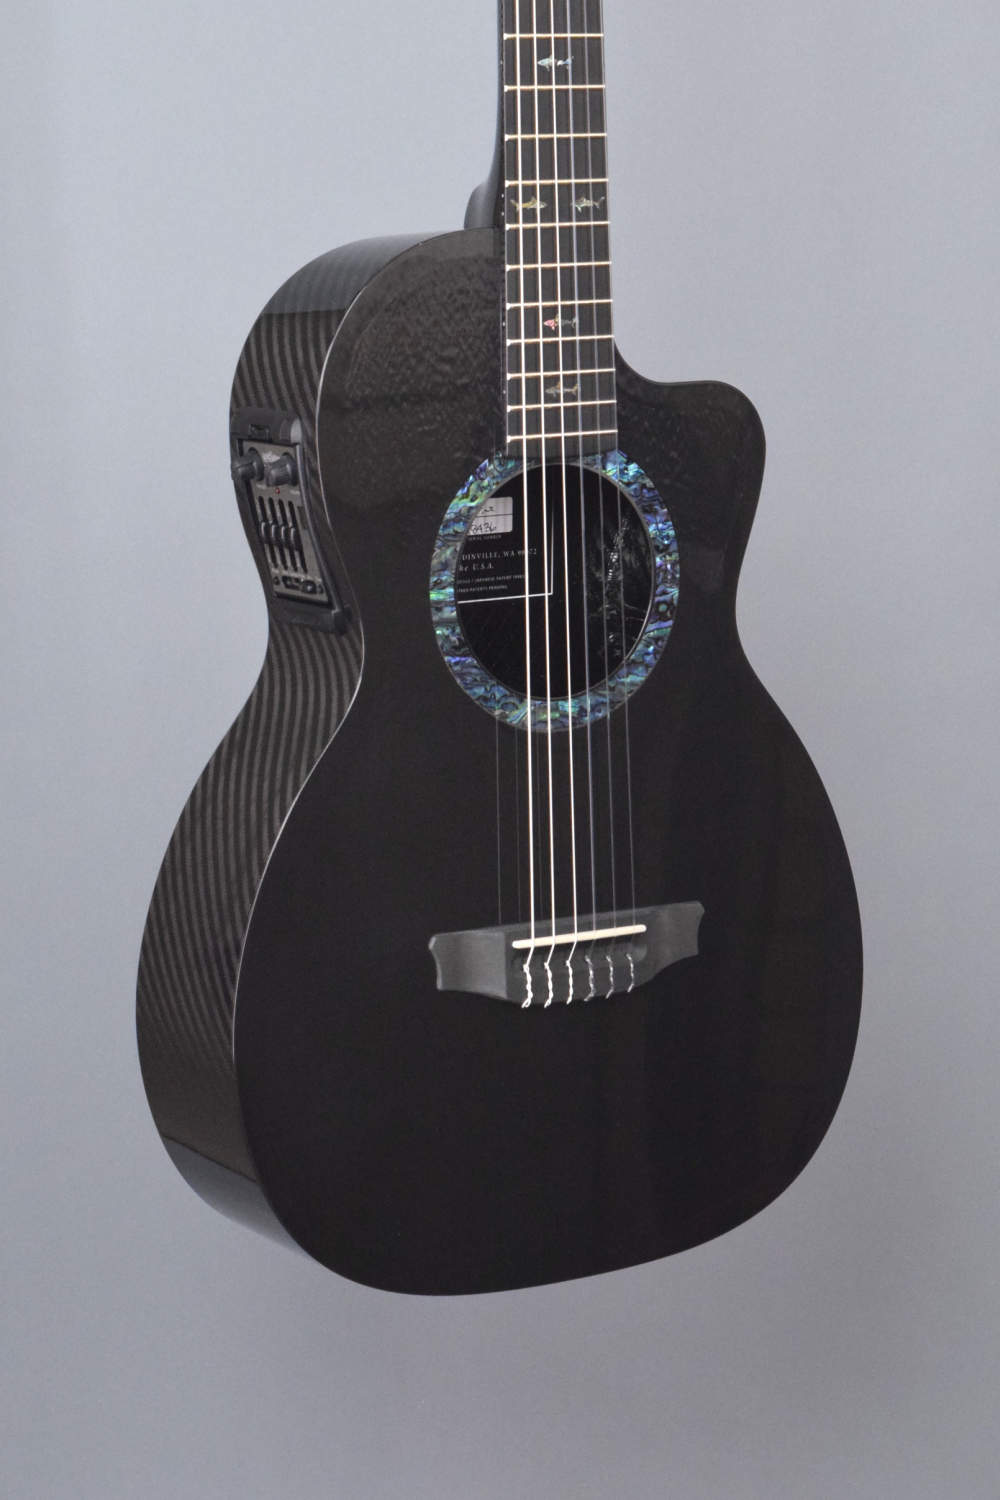 rainsong co pa9000ns nylon string carbon fiber guitar for sale. Black Bedroom Furniture Sets. Home Design Ideas